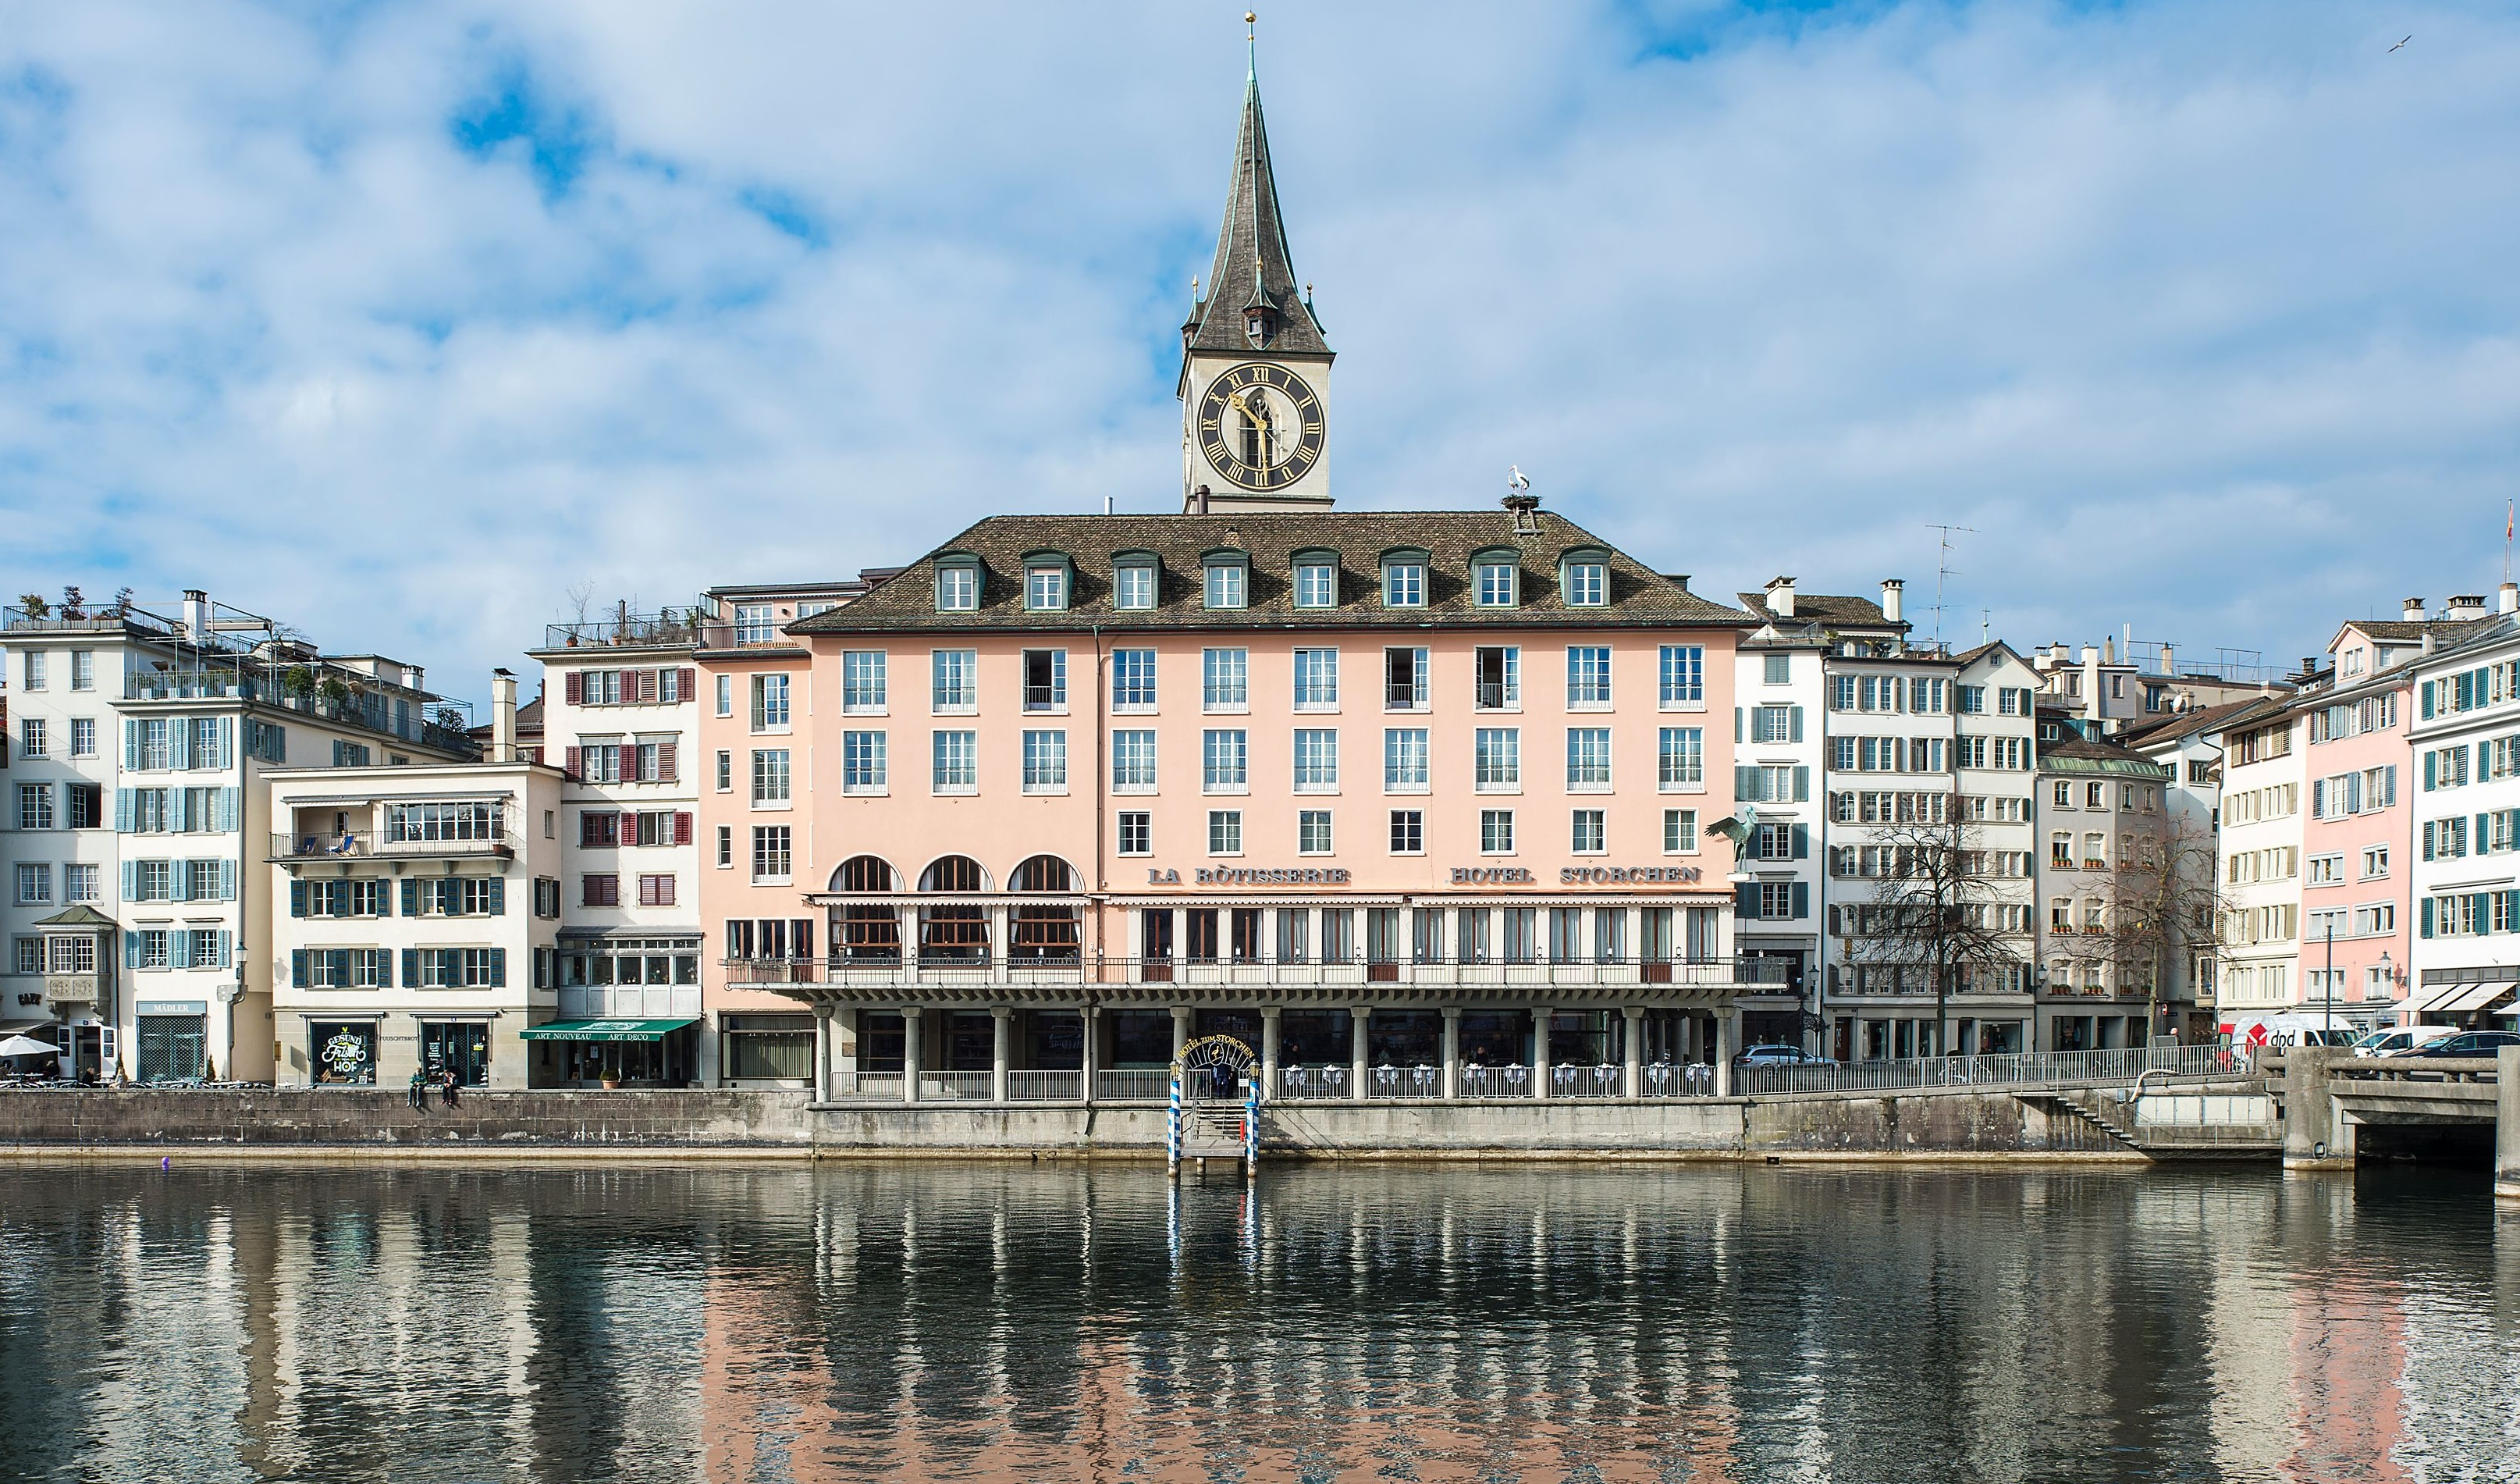 Discover the beautiful St. Peter Pfarrhaus right next to this stunning hotel.